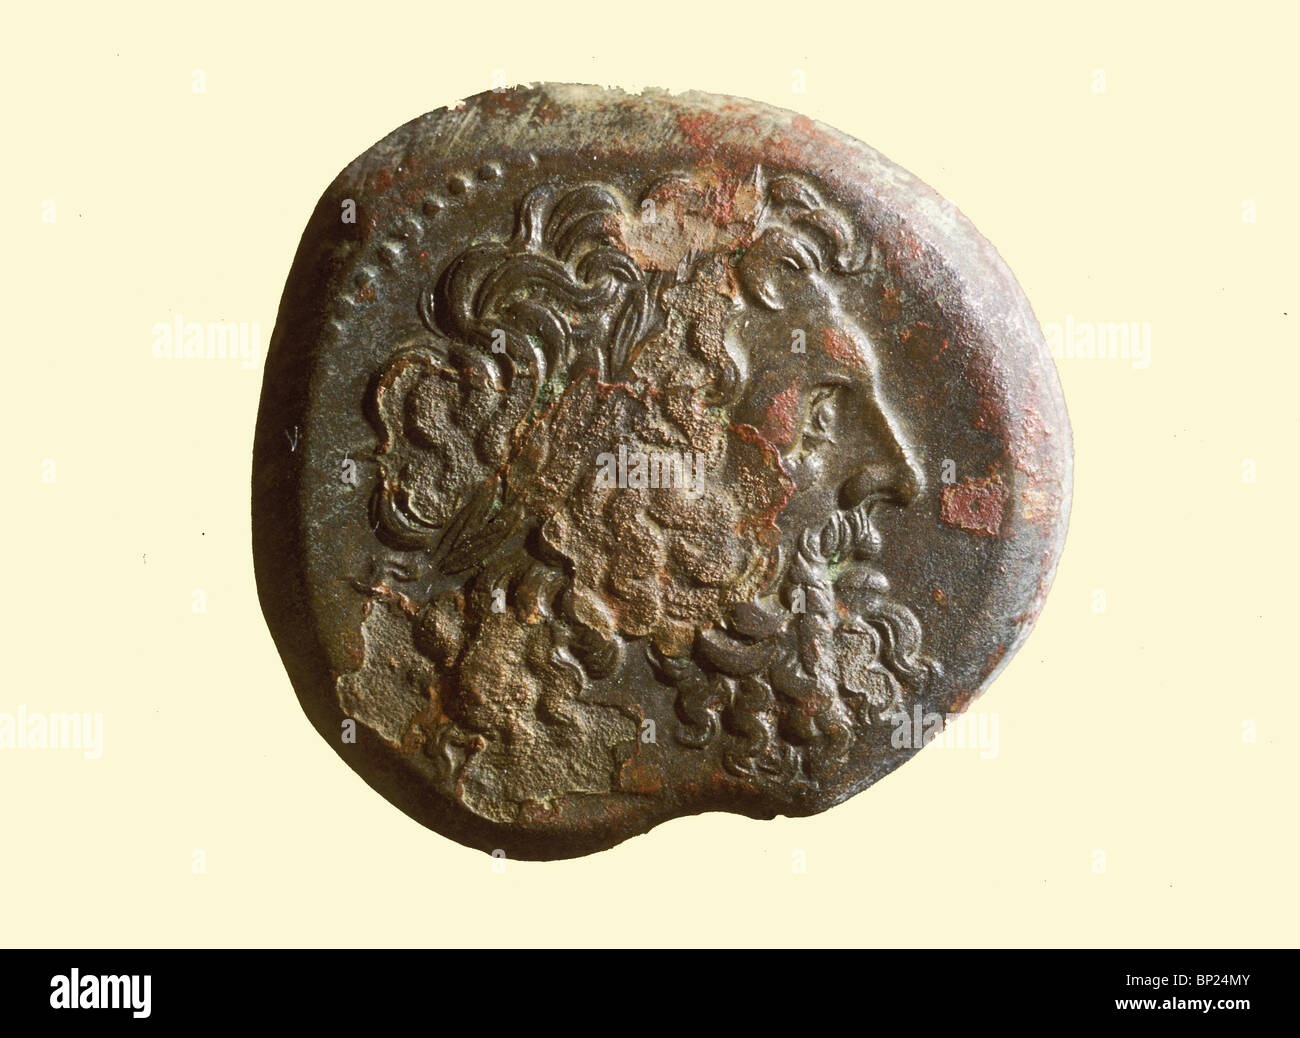 600. HELENISTIC COIN WITH THE BUST OF ZEUSS FROM THE TIMES OF PTOLEMAUS I. - Stock Image